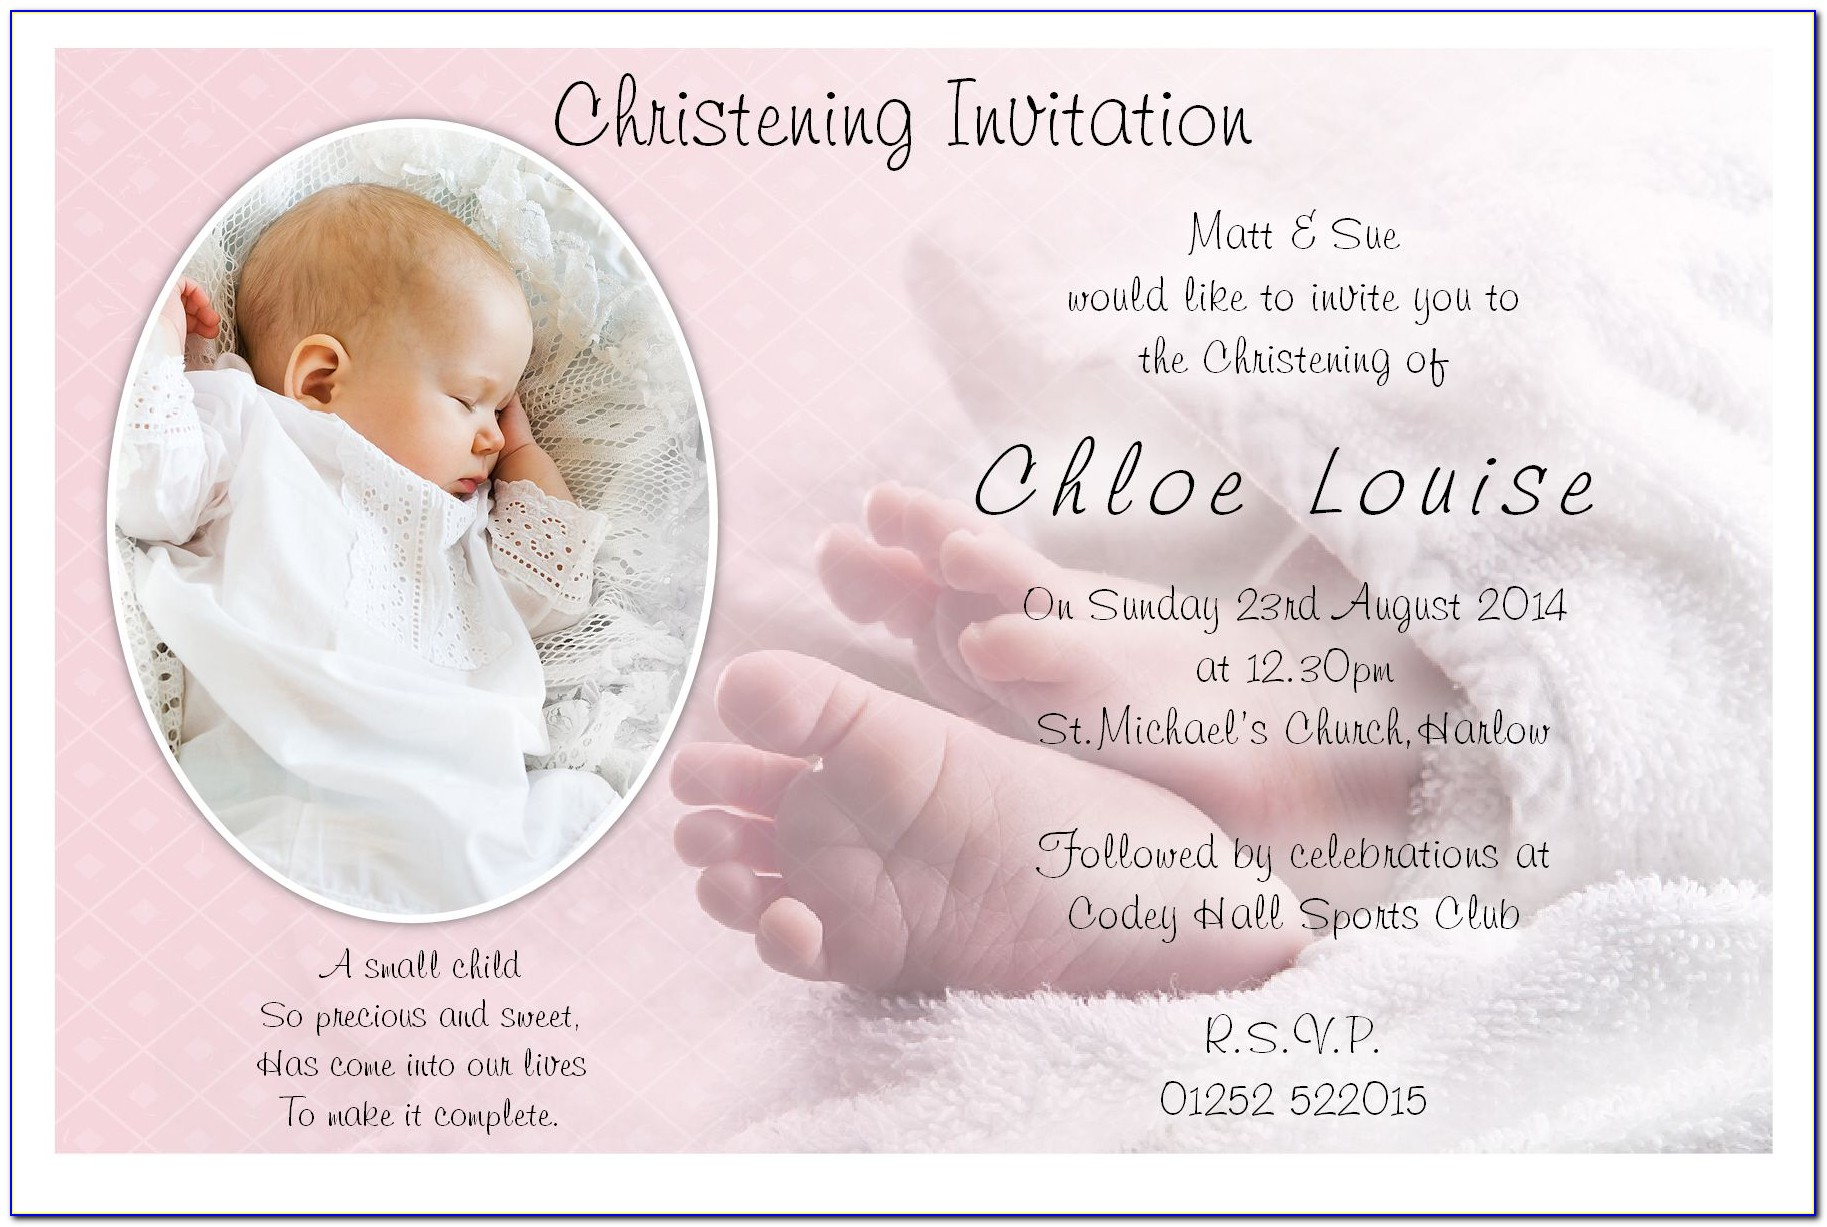 Christening Invitation Template Philippines